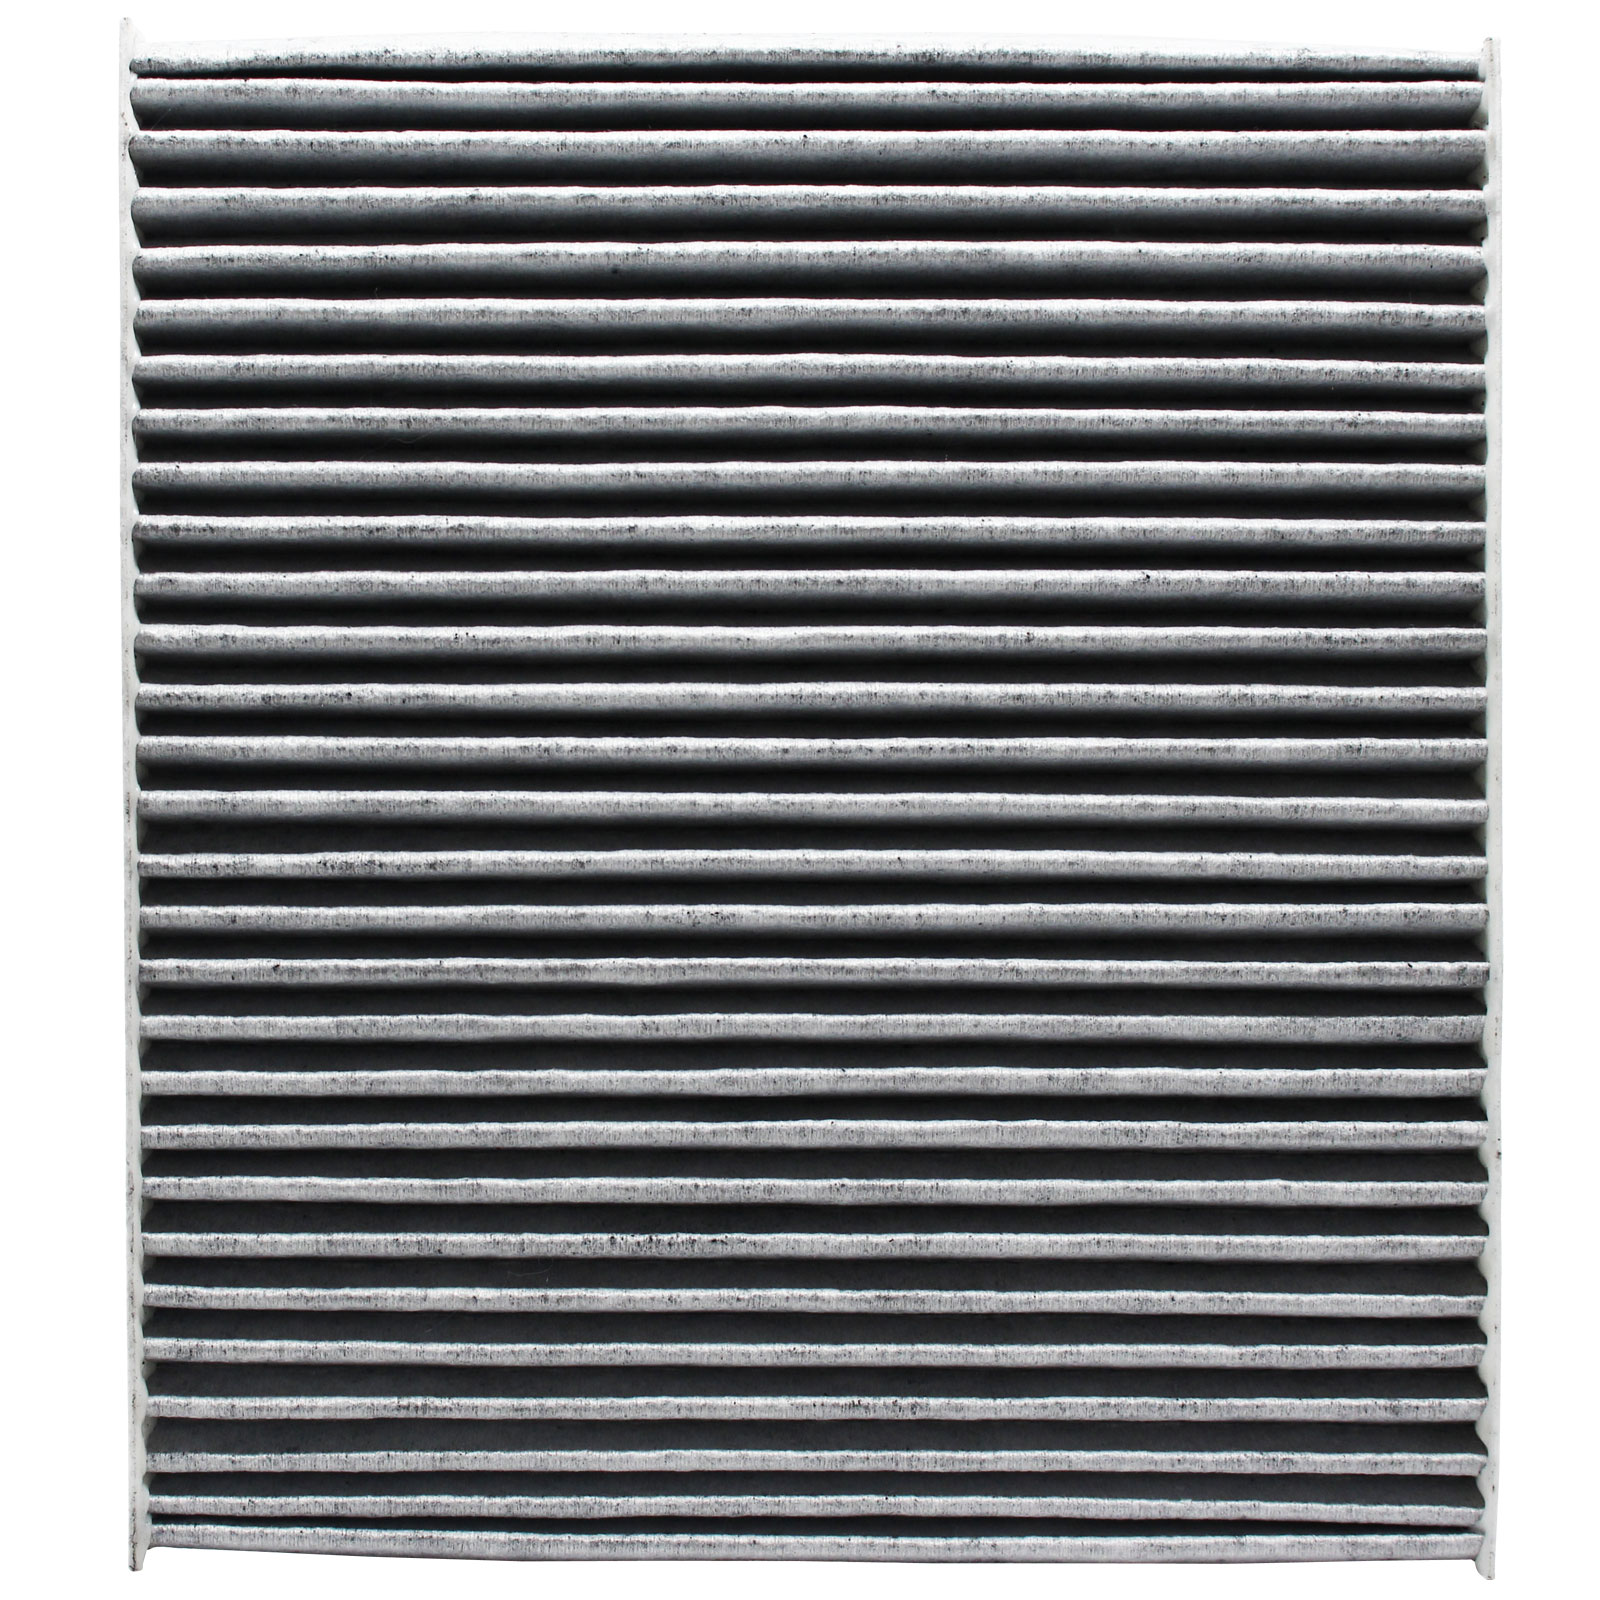 4-Pack Replacement Cabin Air Filter for KIA 97133-2E210 Car/Automotive - Activated Carbon, ACF-10709 - image 1 of 4